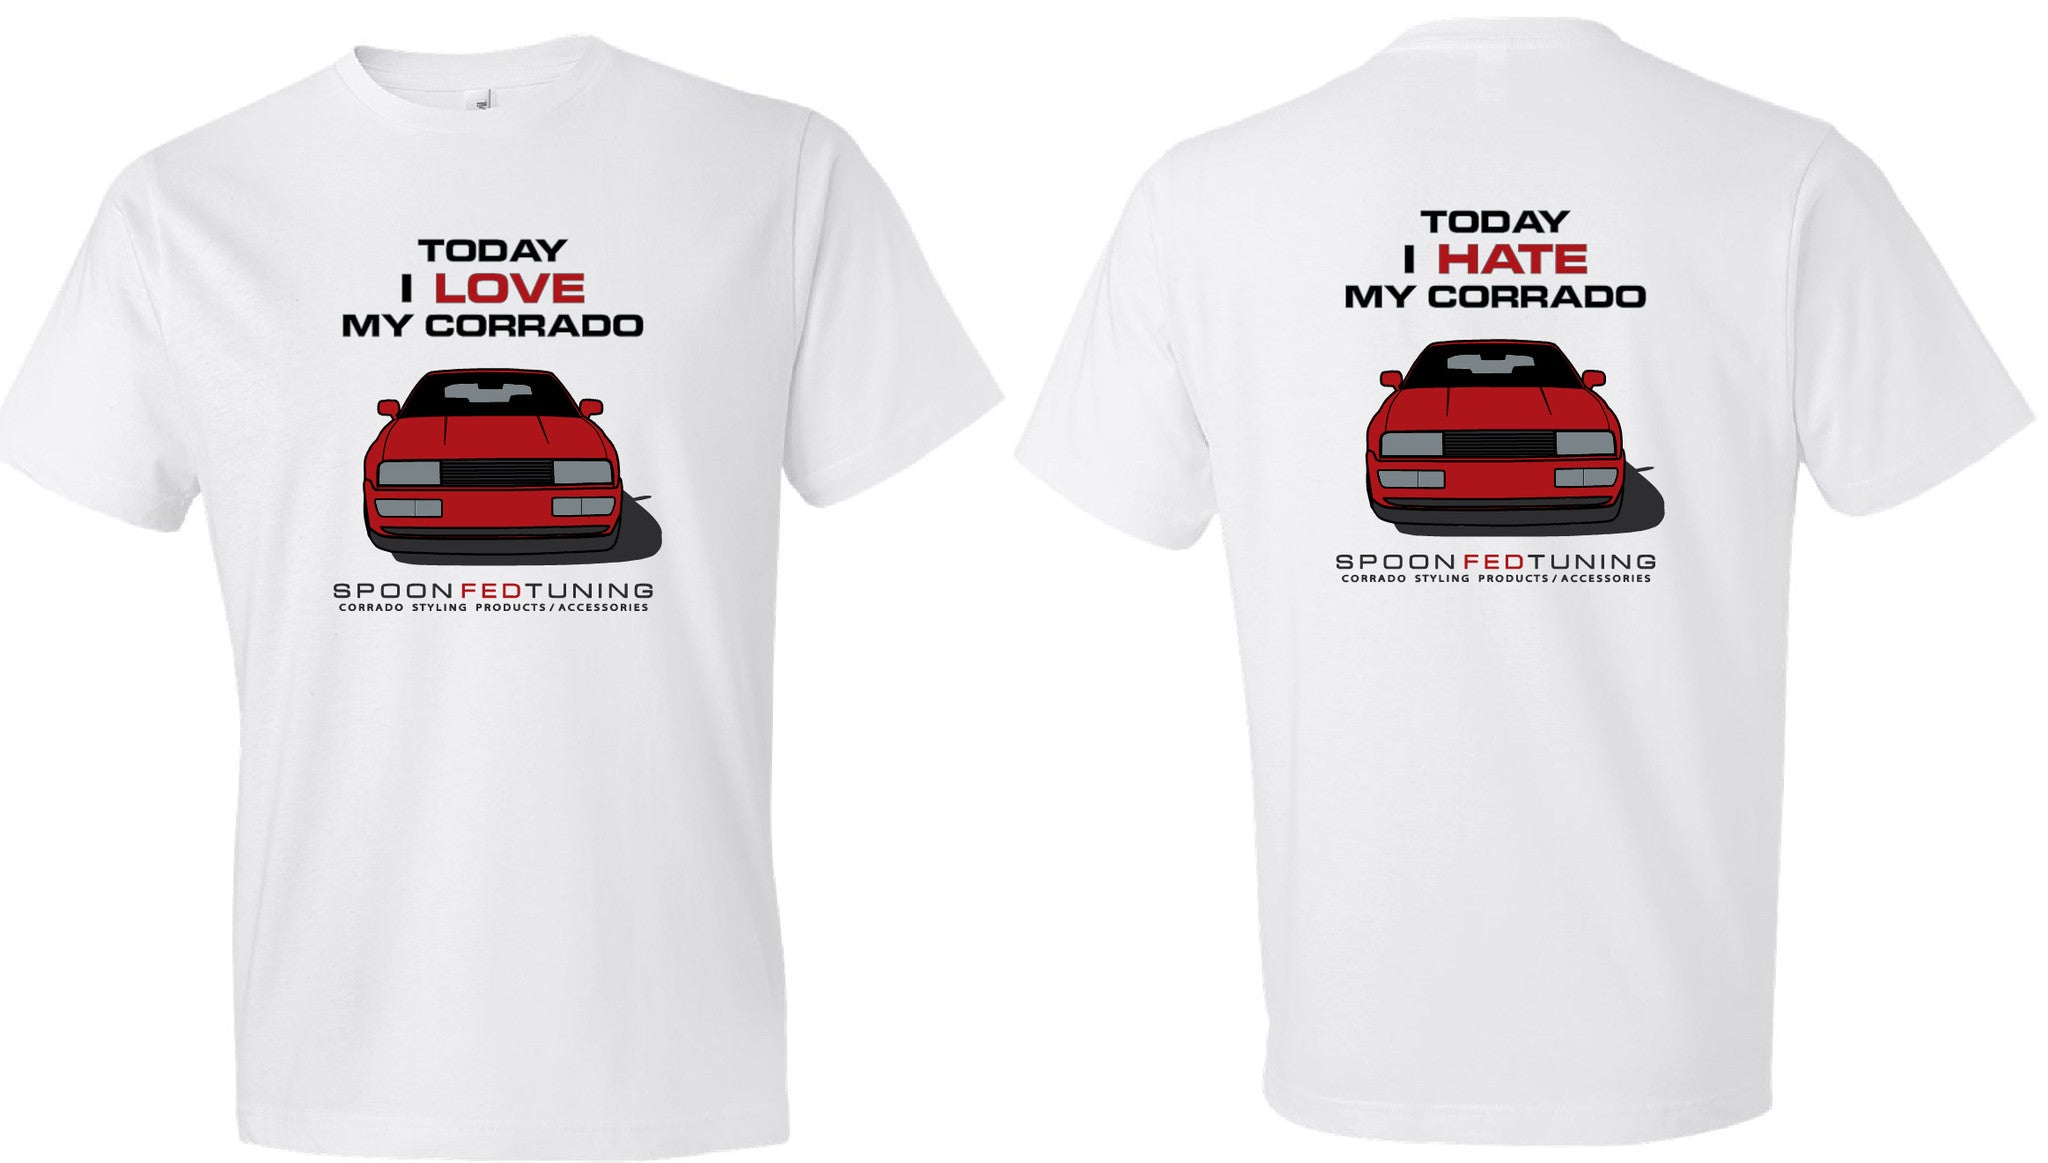 SpoonFedTuning Corrado Love/Hate T-Shirt